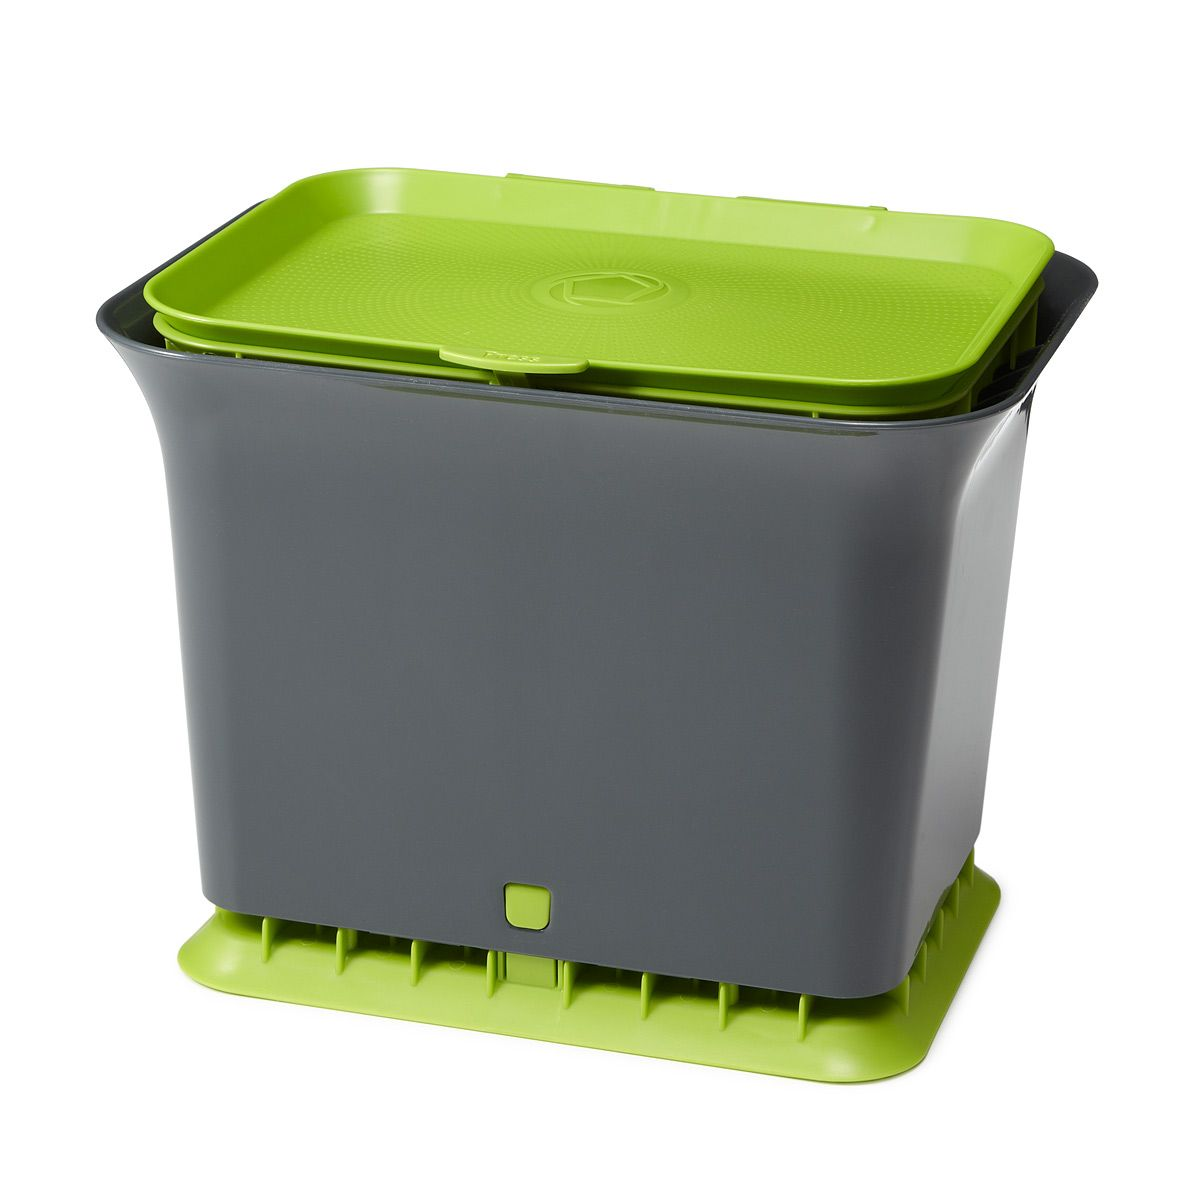 FRESH AIR COMPOST COLLECTOR | Odor Resistant Compost Container, Odor Free Kitchen  Compost Collect, Compost Bin, Reduce Odor Compost Container | ...